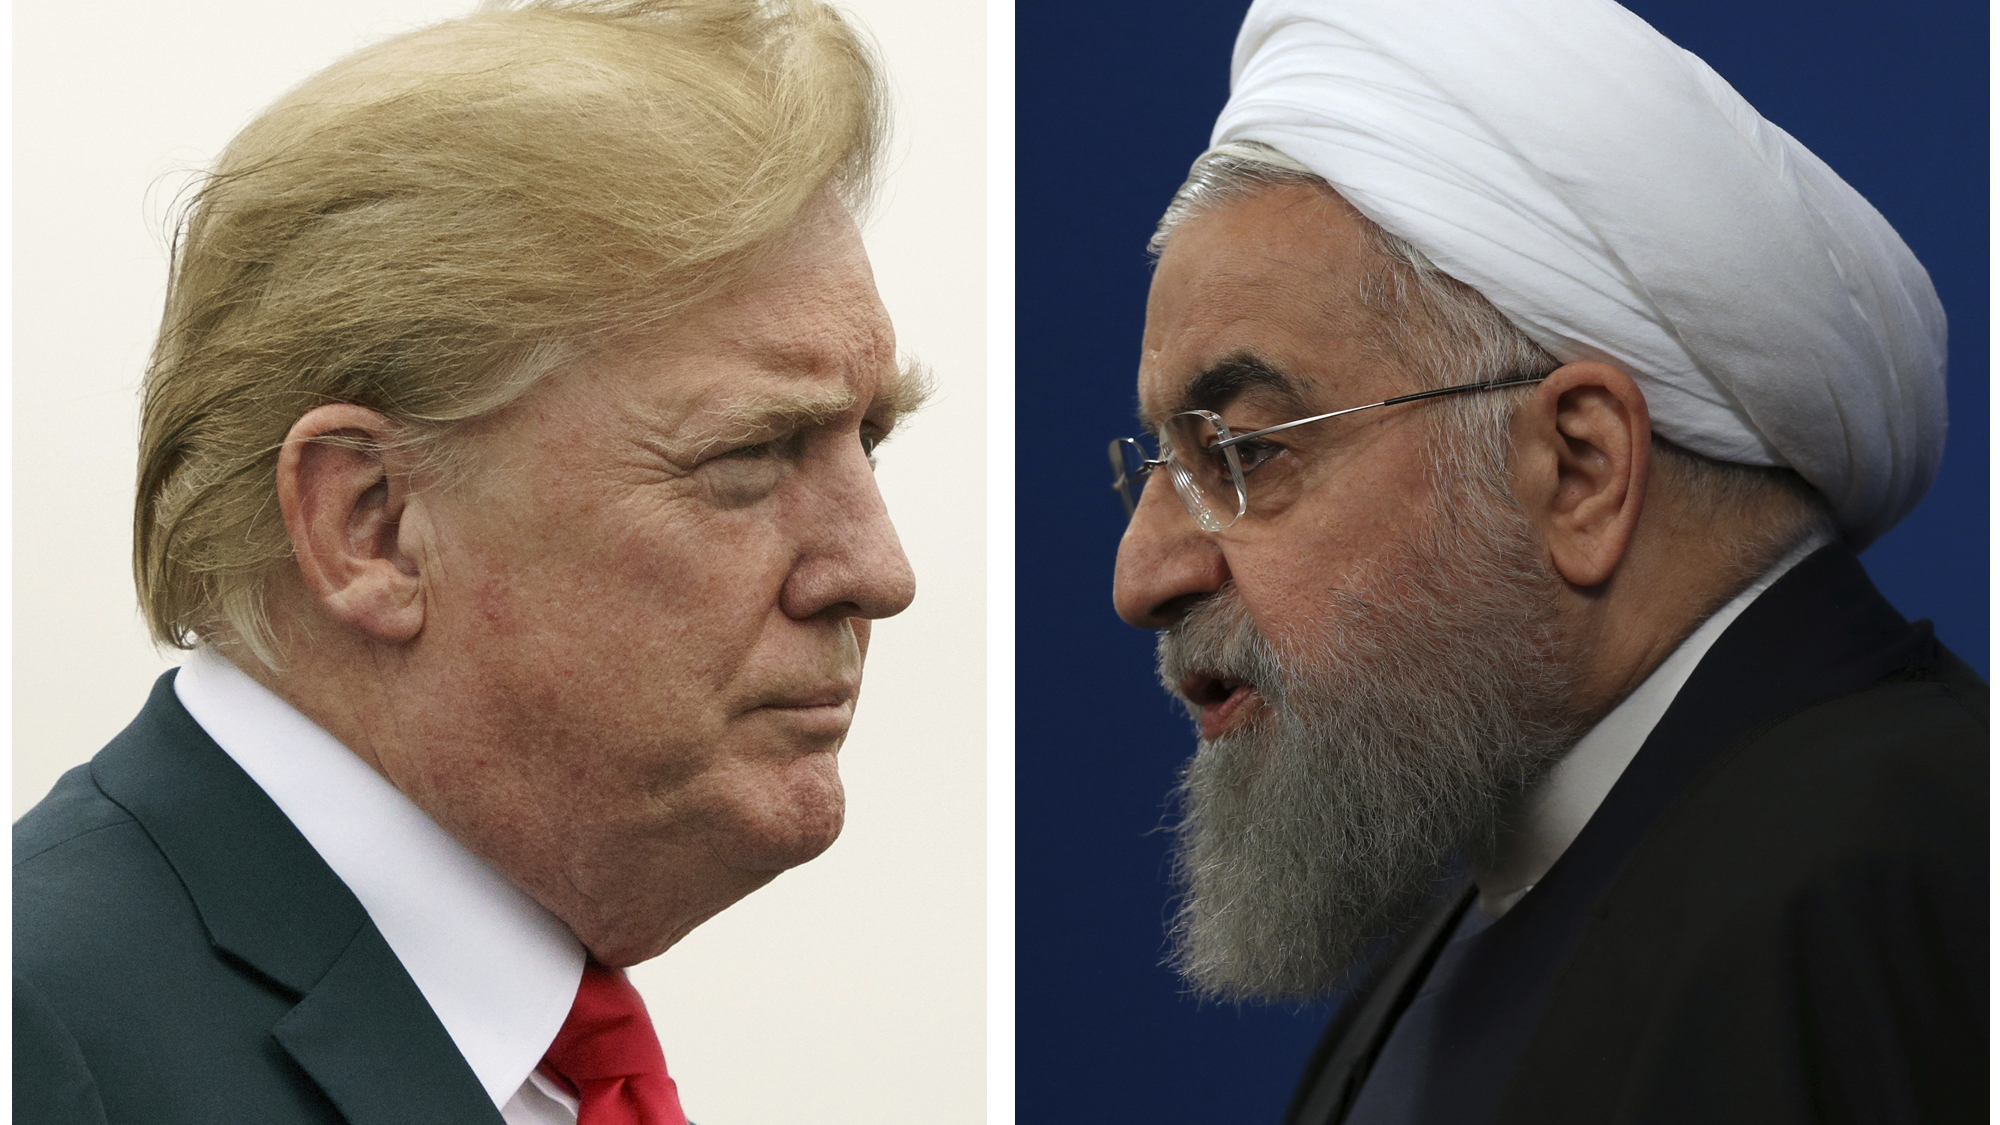 Iranian President Threatens U.S. With Mother Of All Wars